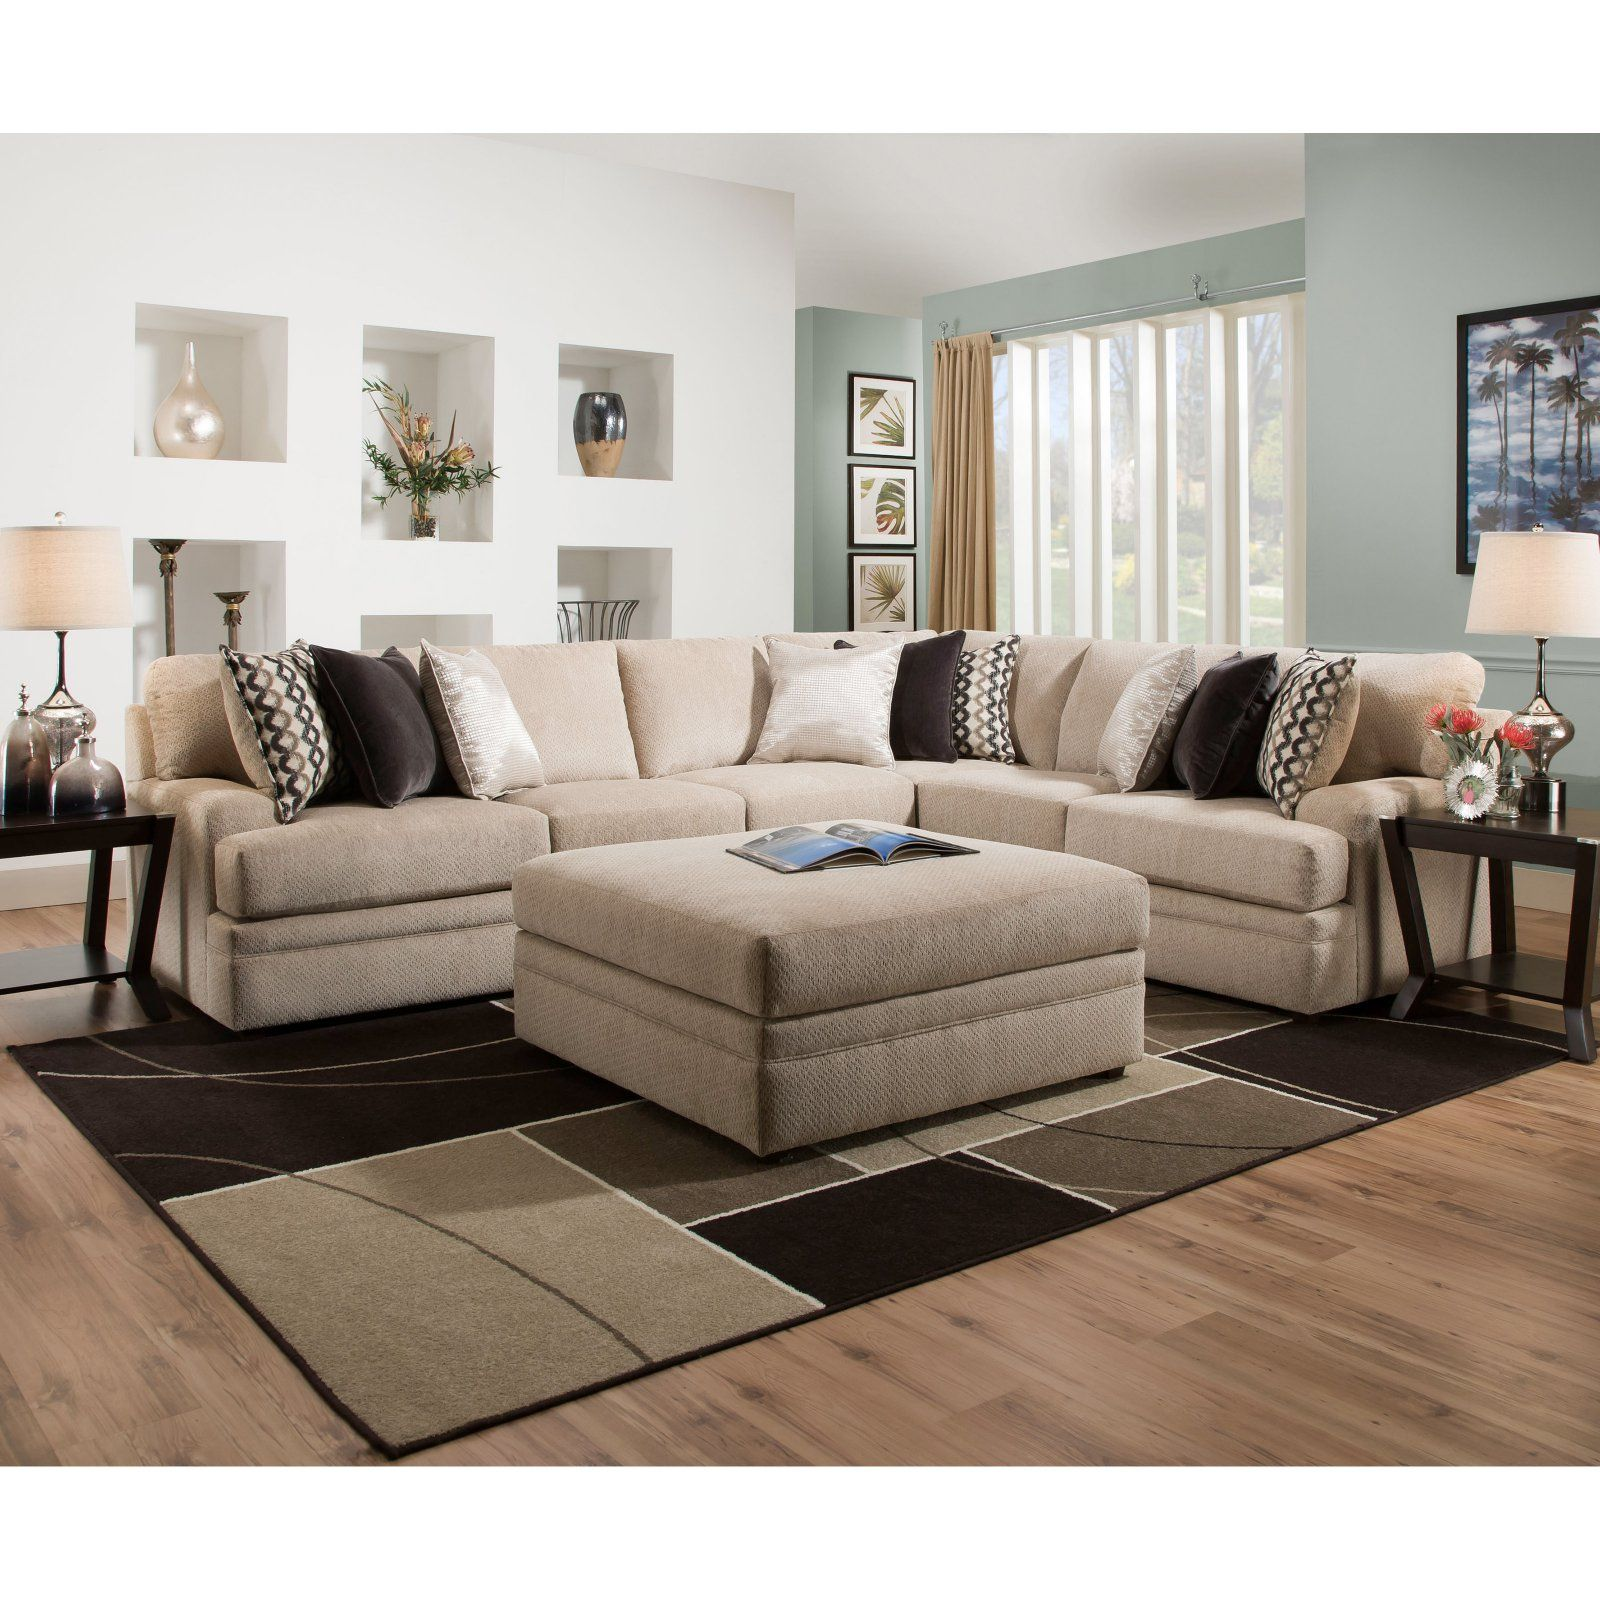 Simmons upholstery bellamy putty sectional salon furniture outlet ideas discount also in products rh pinterest